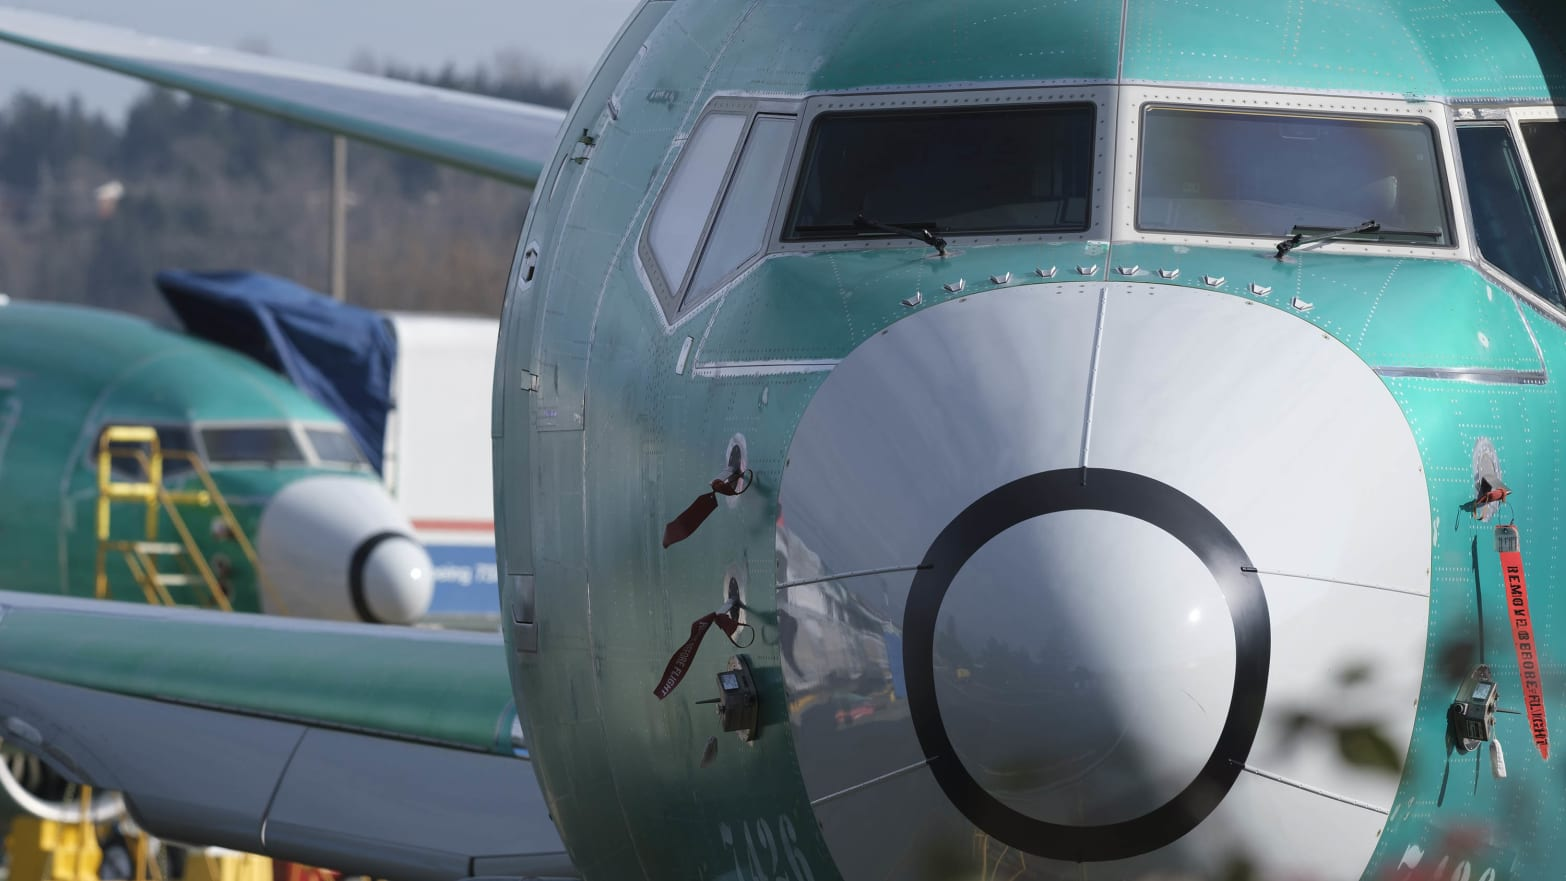 Ethiopian Airlines 737 MAX 8 Crash: FAA Let Boeing Get Away With